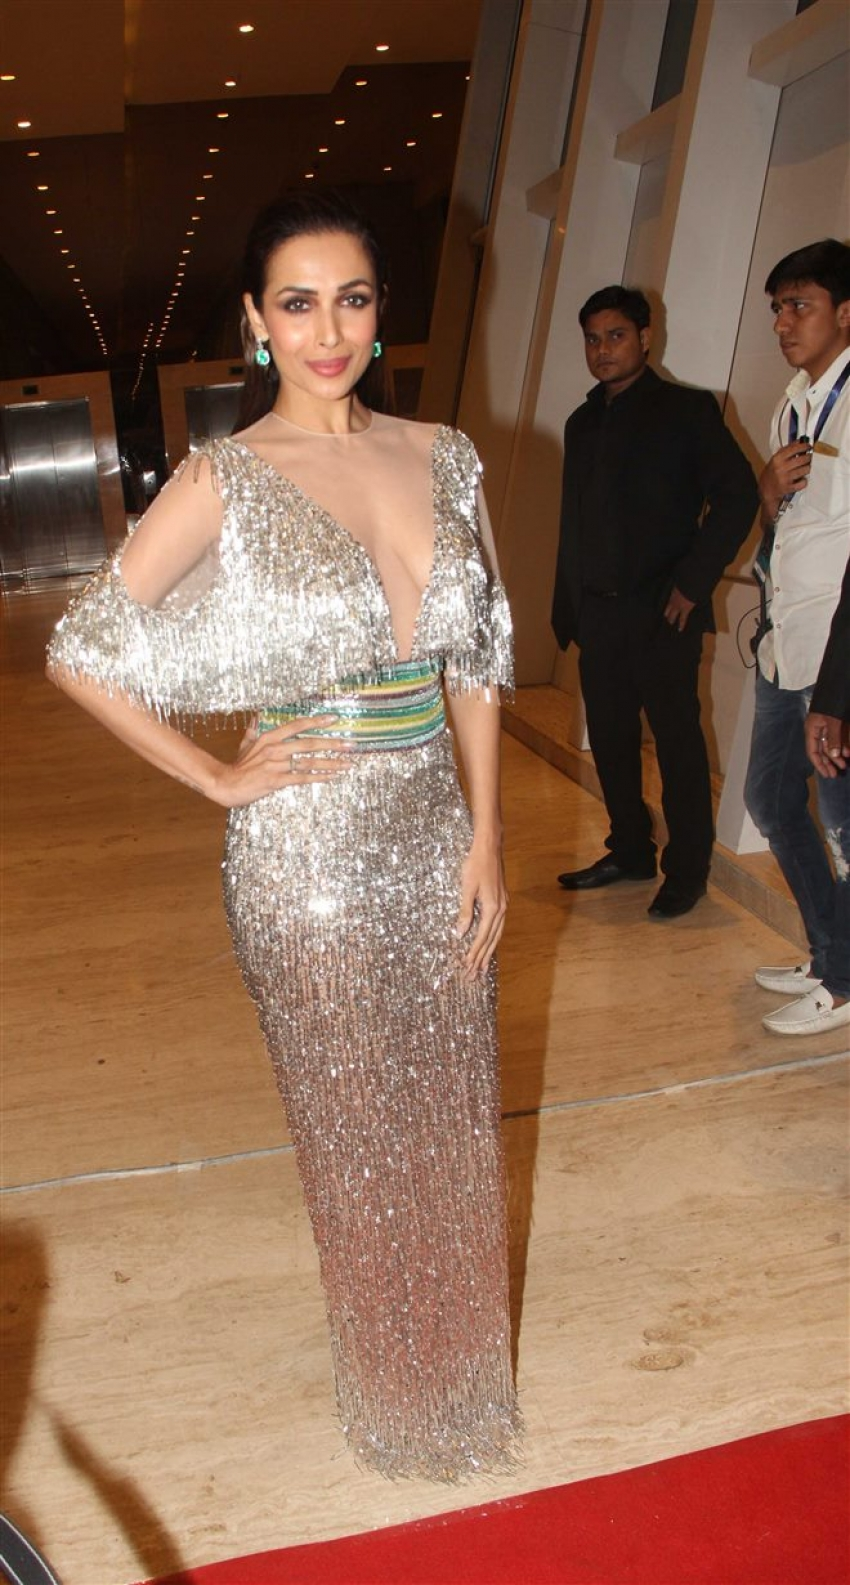 Star Studded Red Carpet Of Miss Diva 2017 Grand Finale